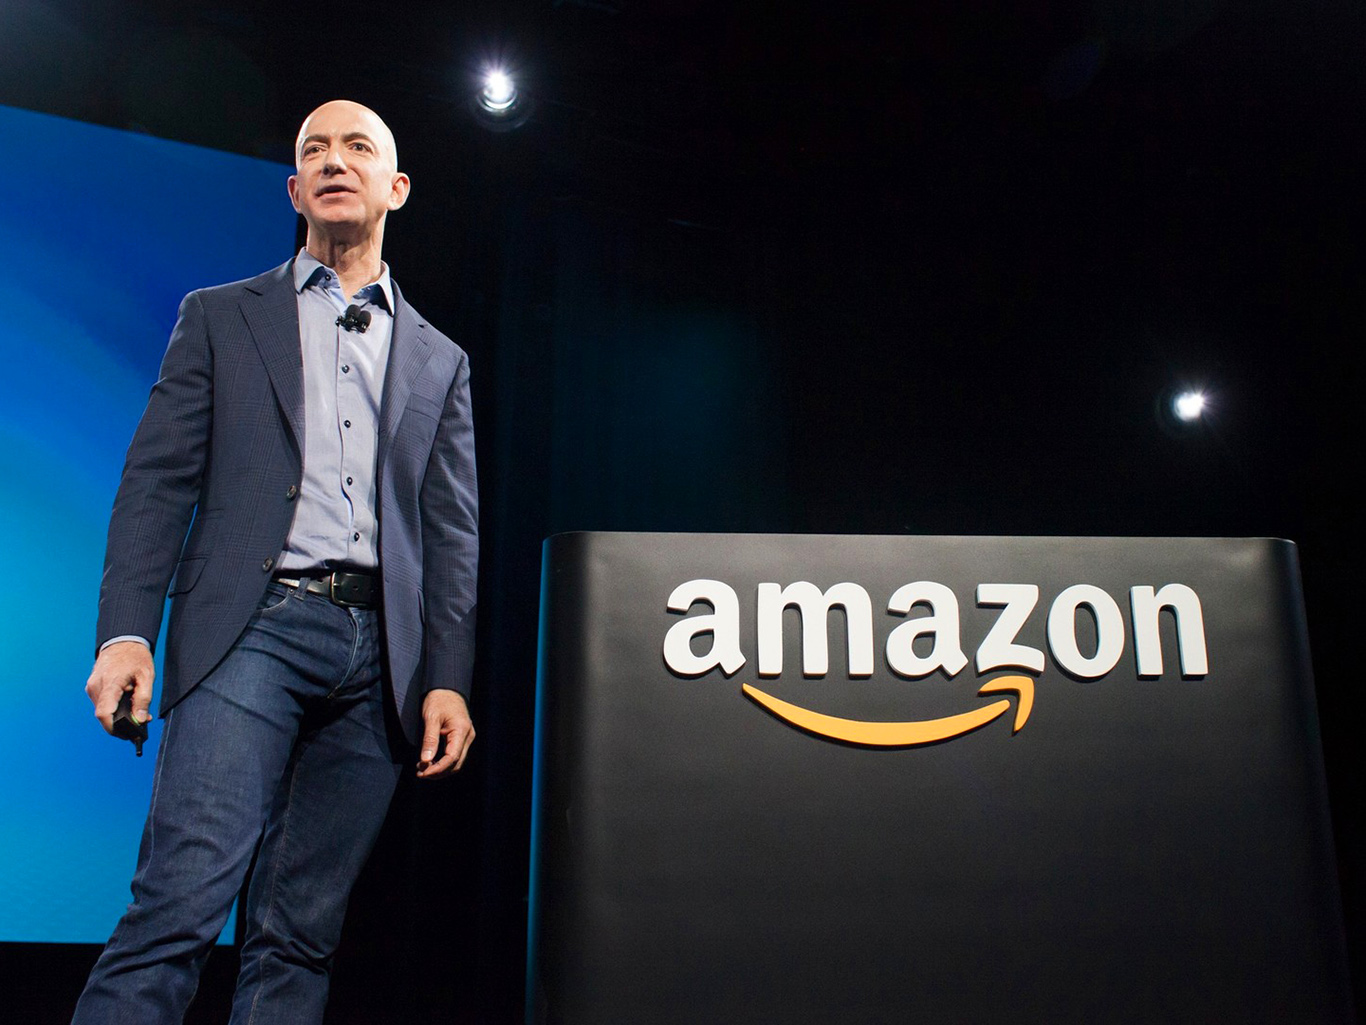 The main rules of success from billionaire Jeff Bezos